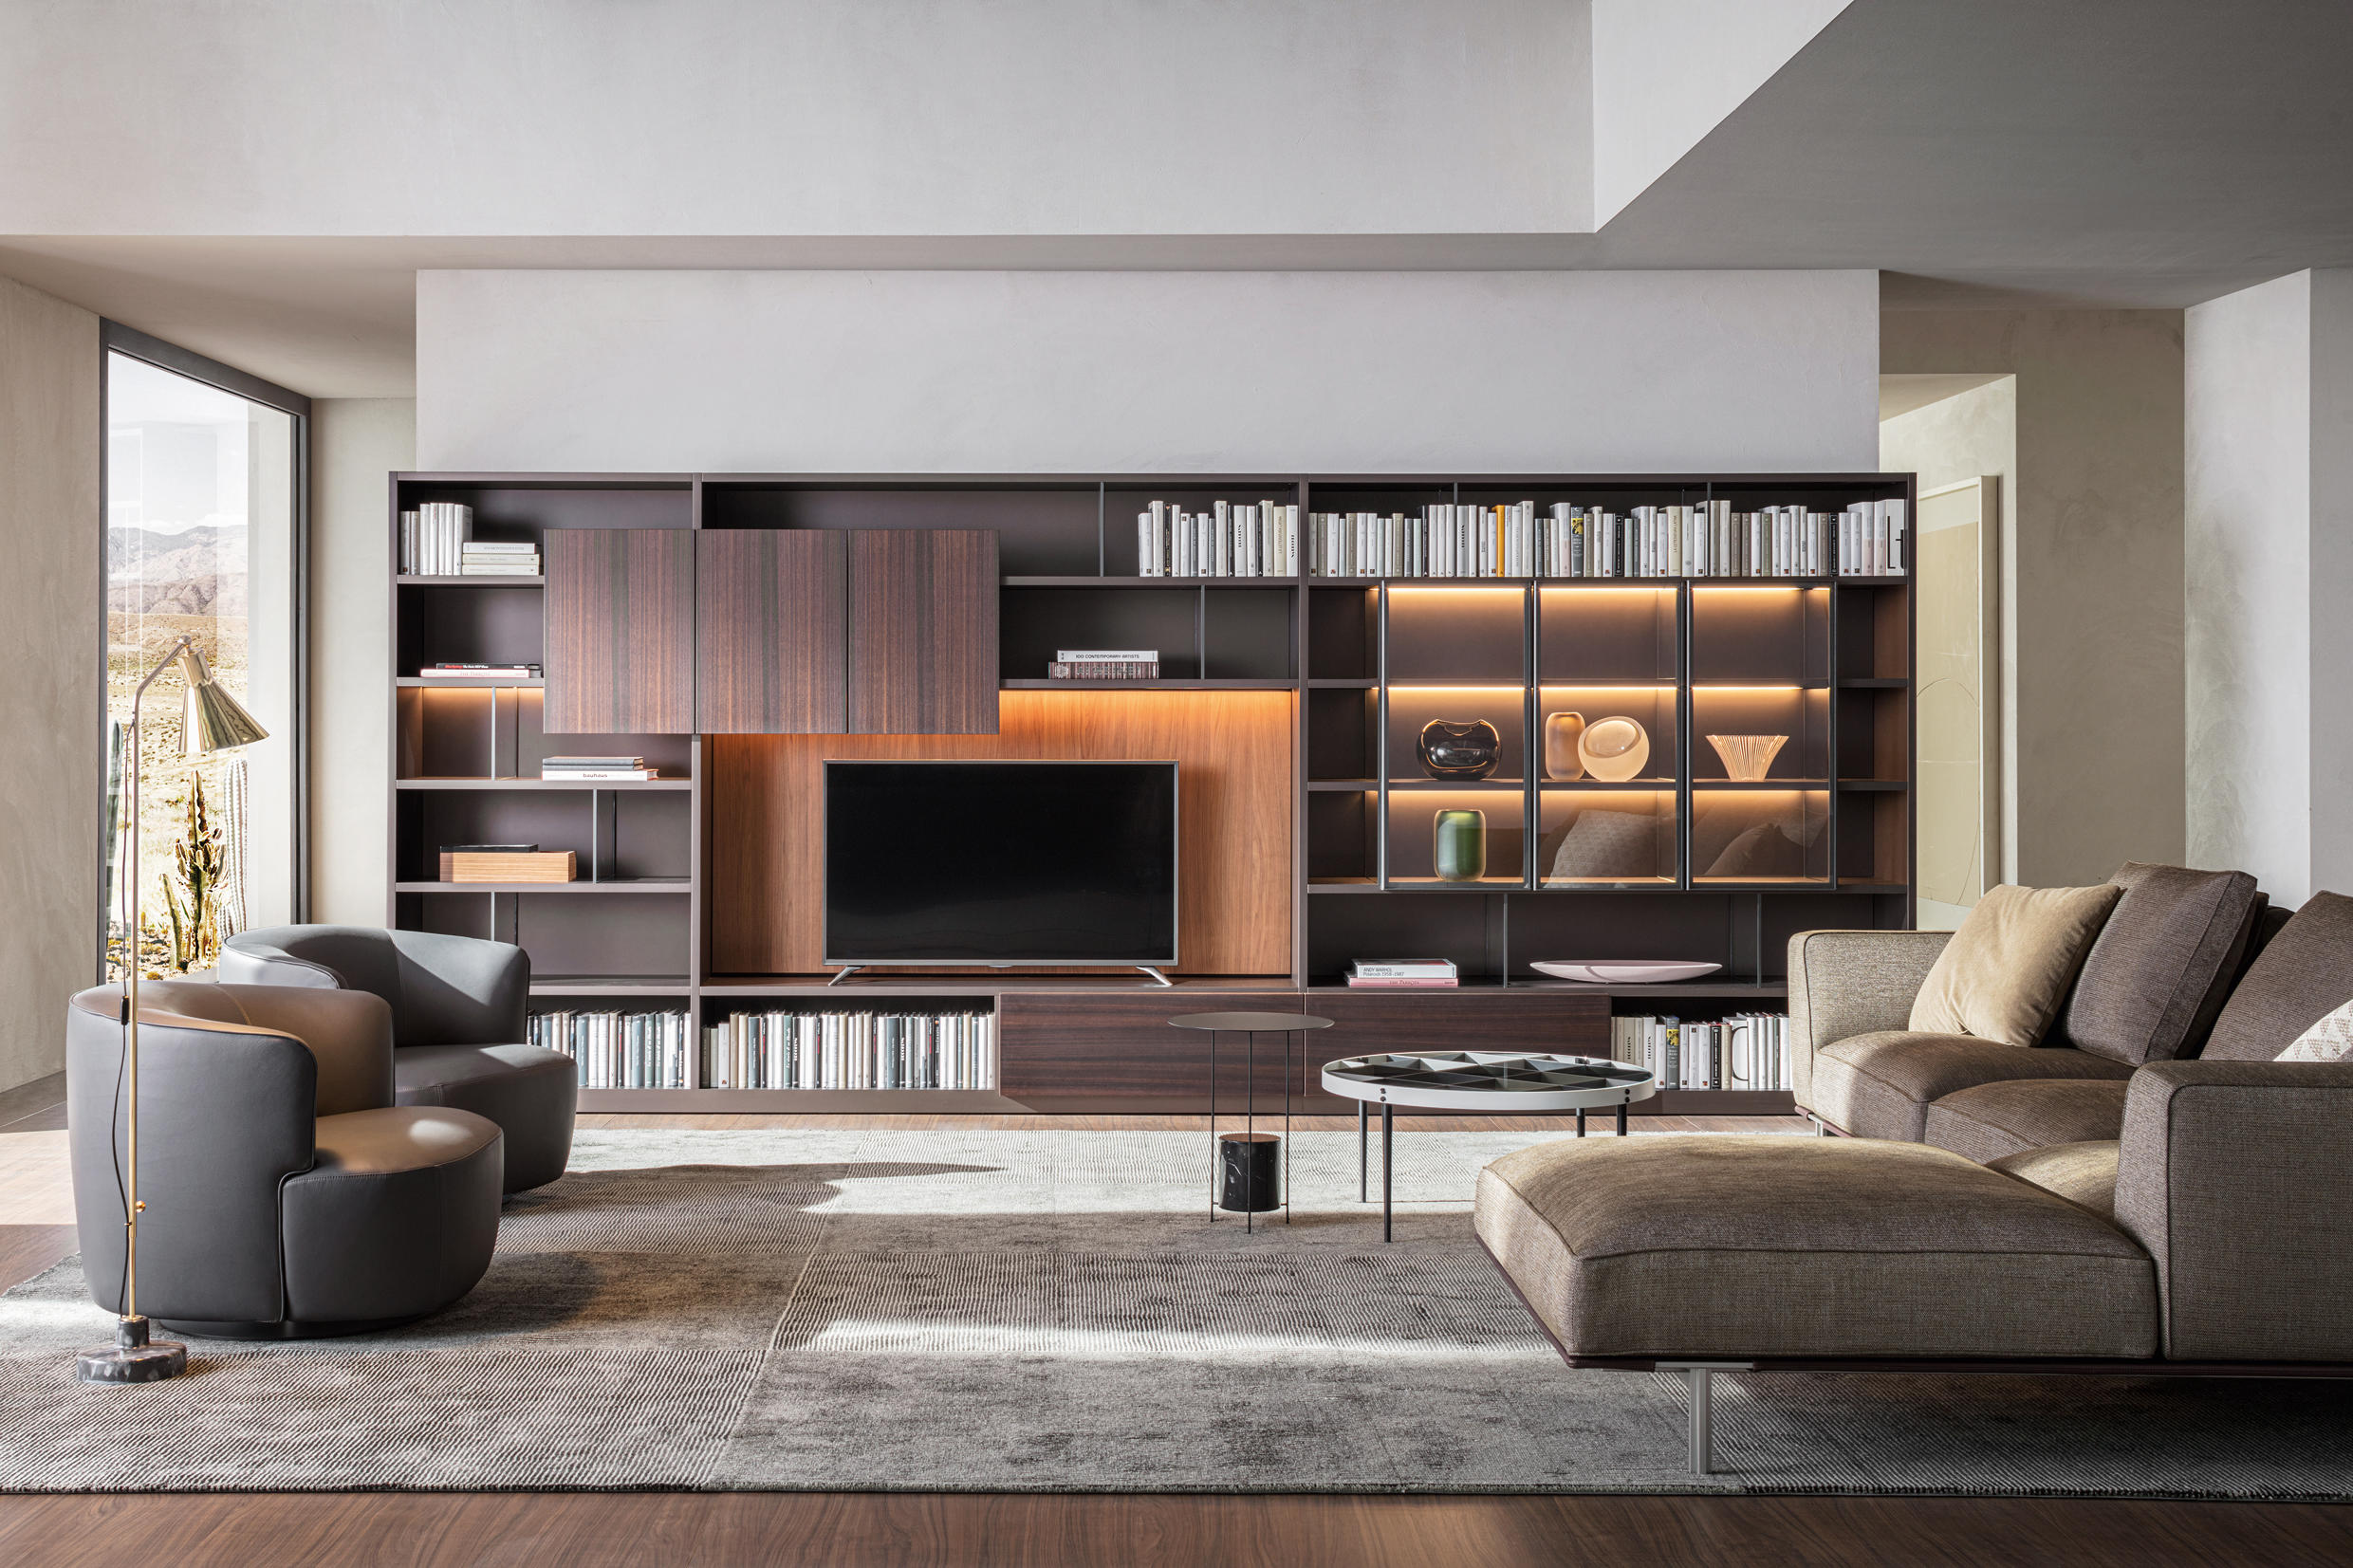 505 - Multimedia sideboards from Molteni & C | Architonic